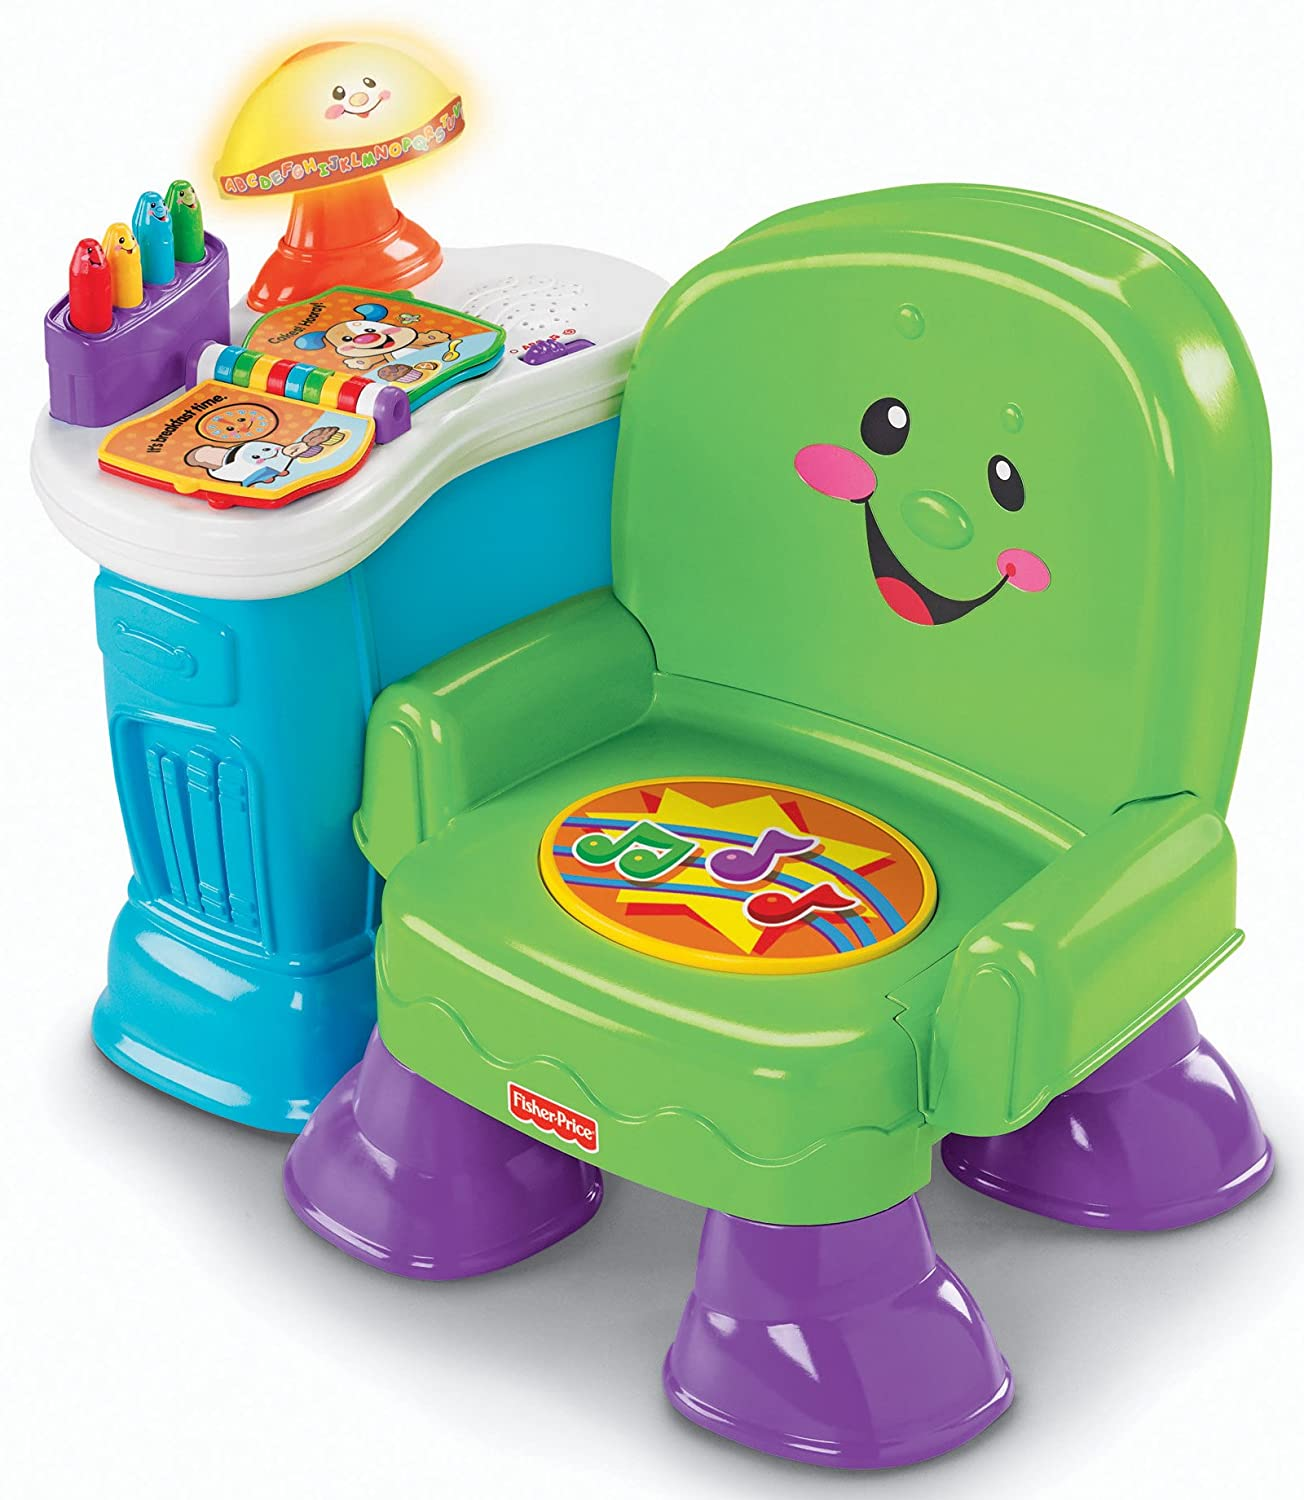 Fisher Price Laugh & Learn Musical Learning Chair Green Amazon